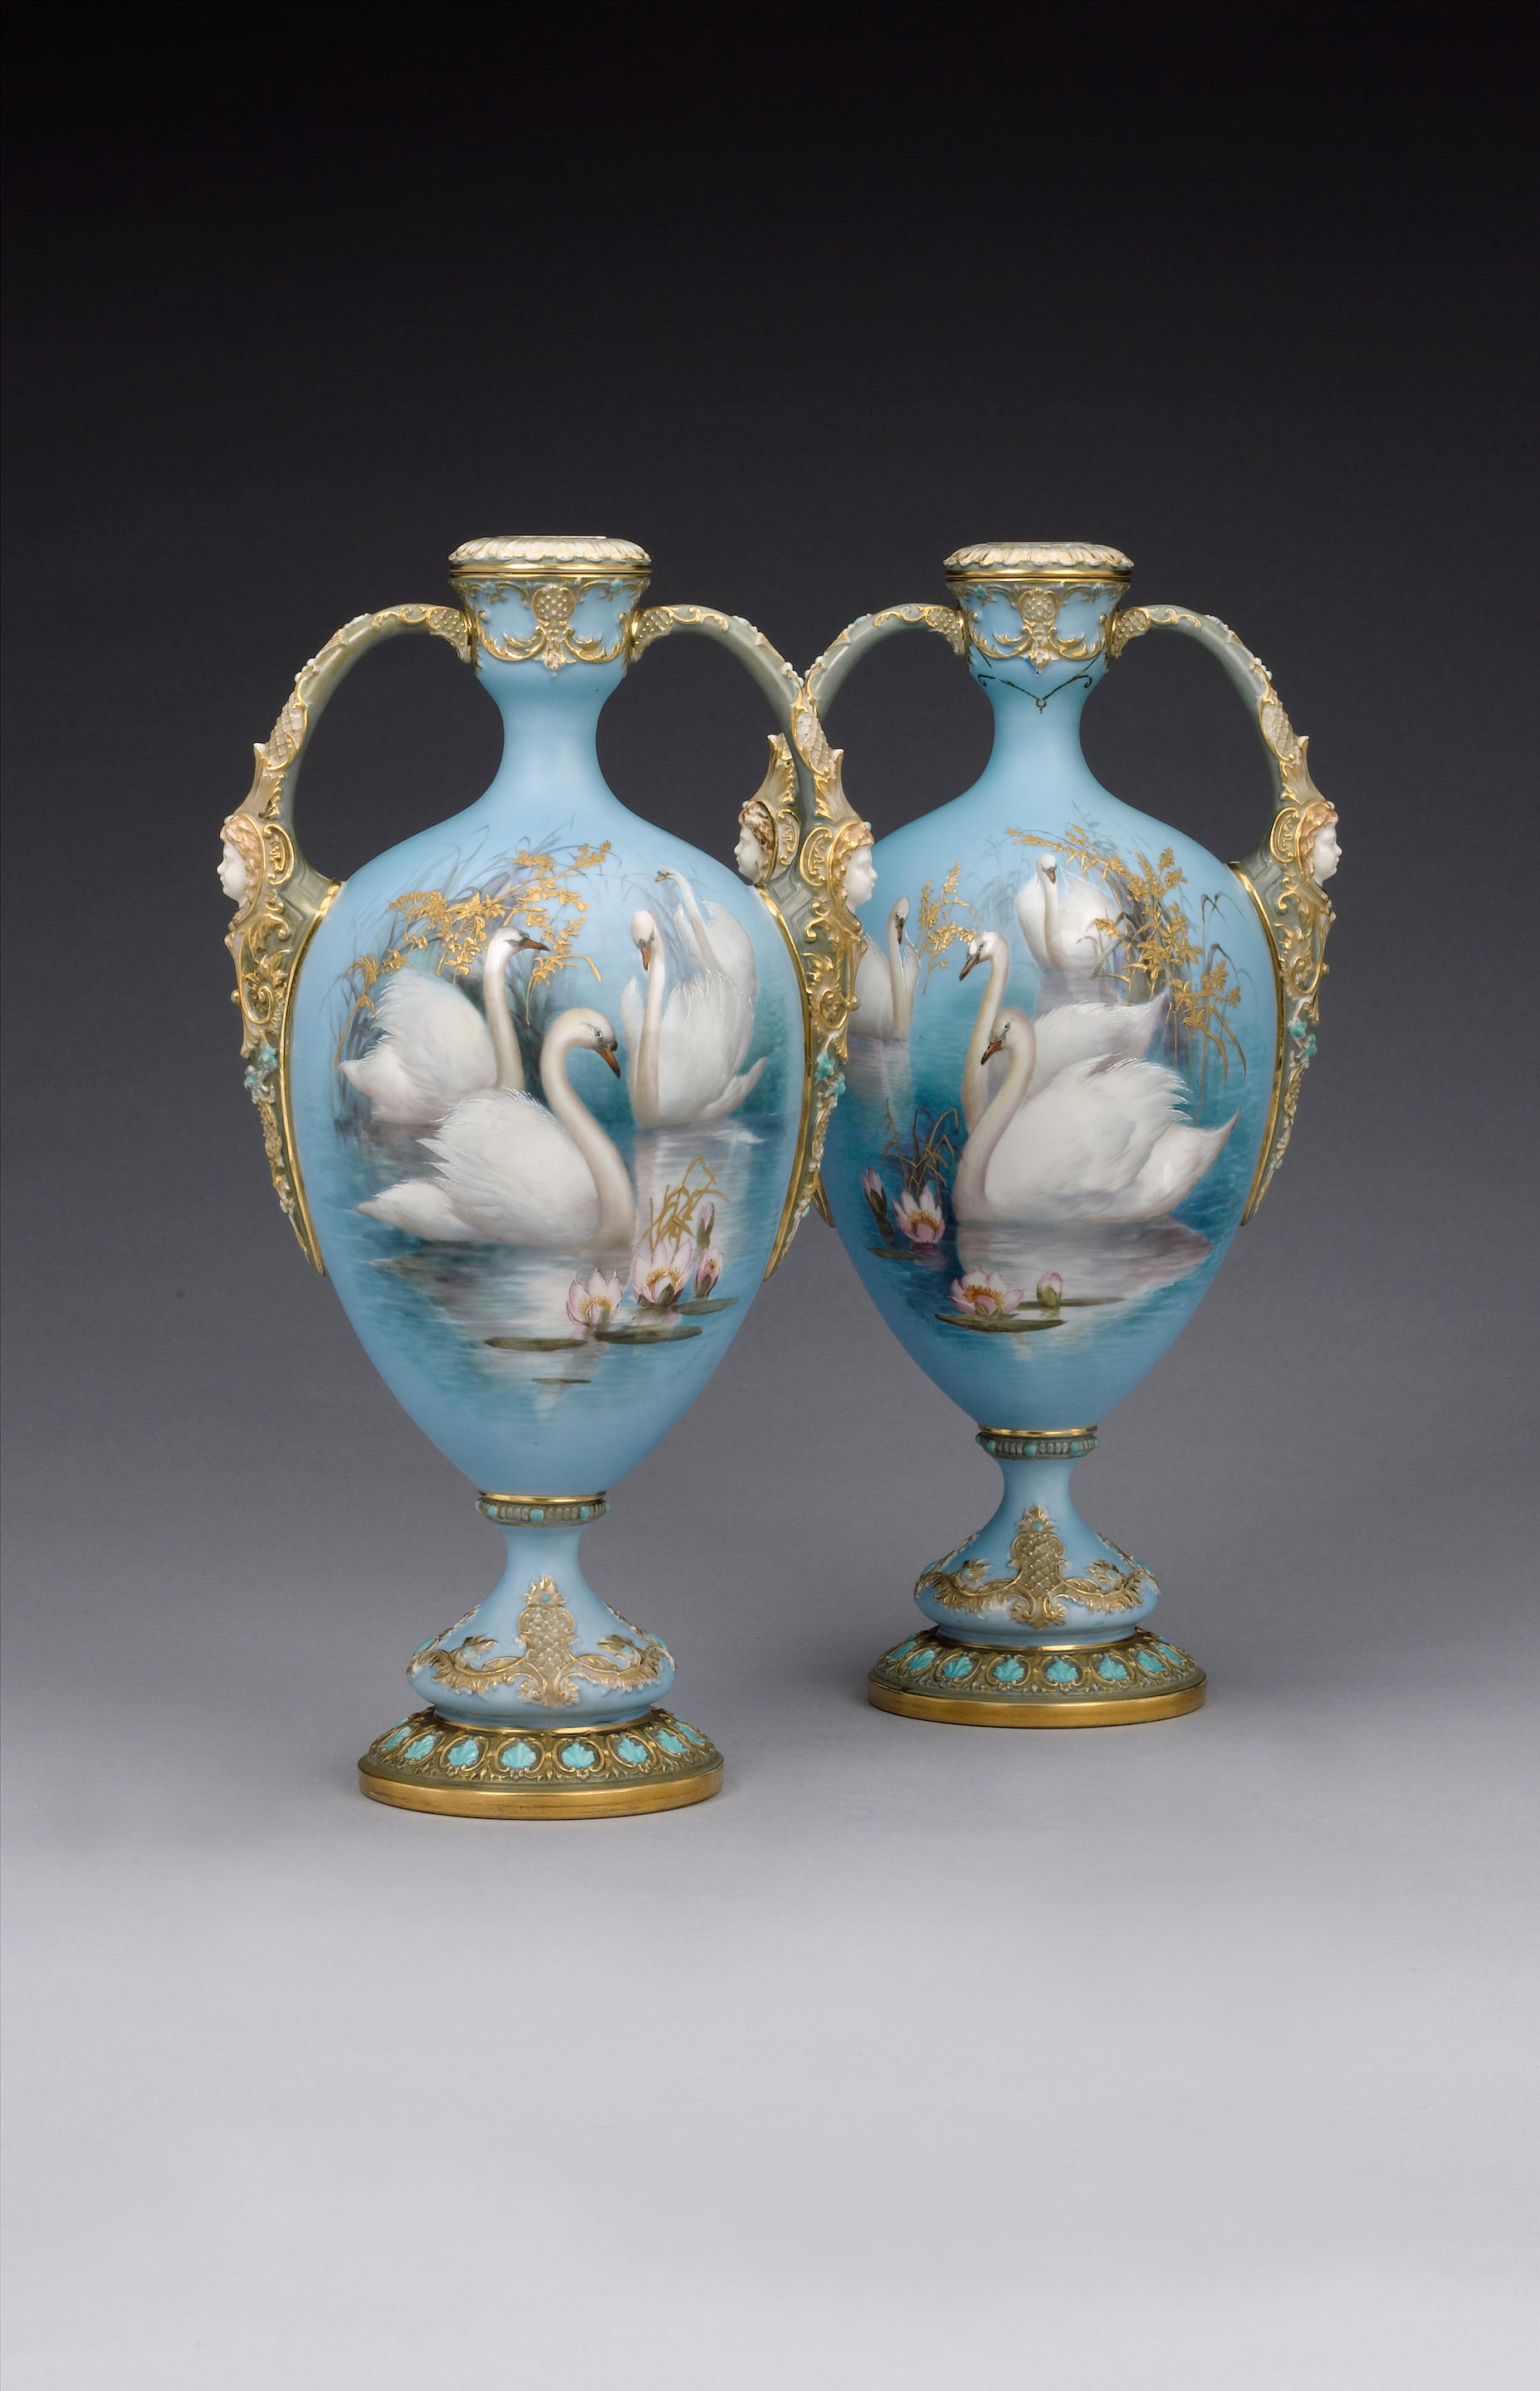 A rare pair of Royal Worcester vases and covers by Charley Baldwyn